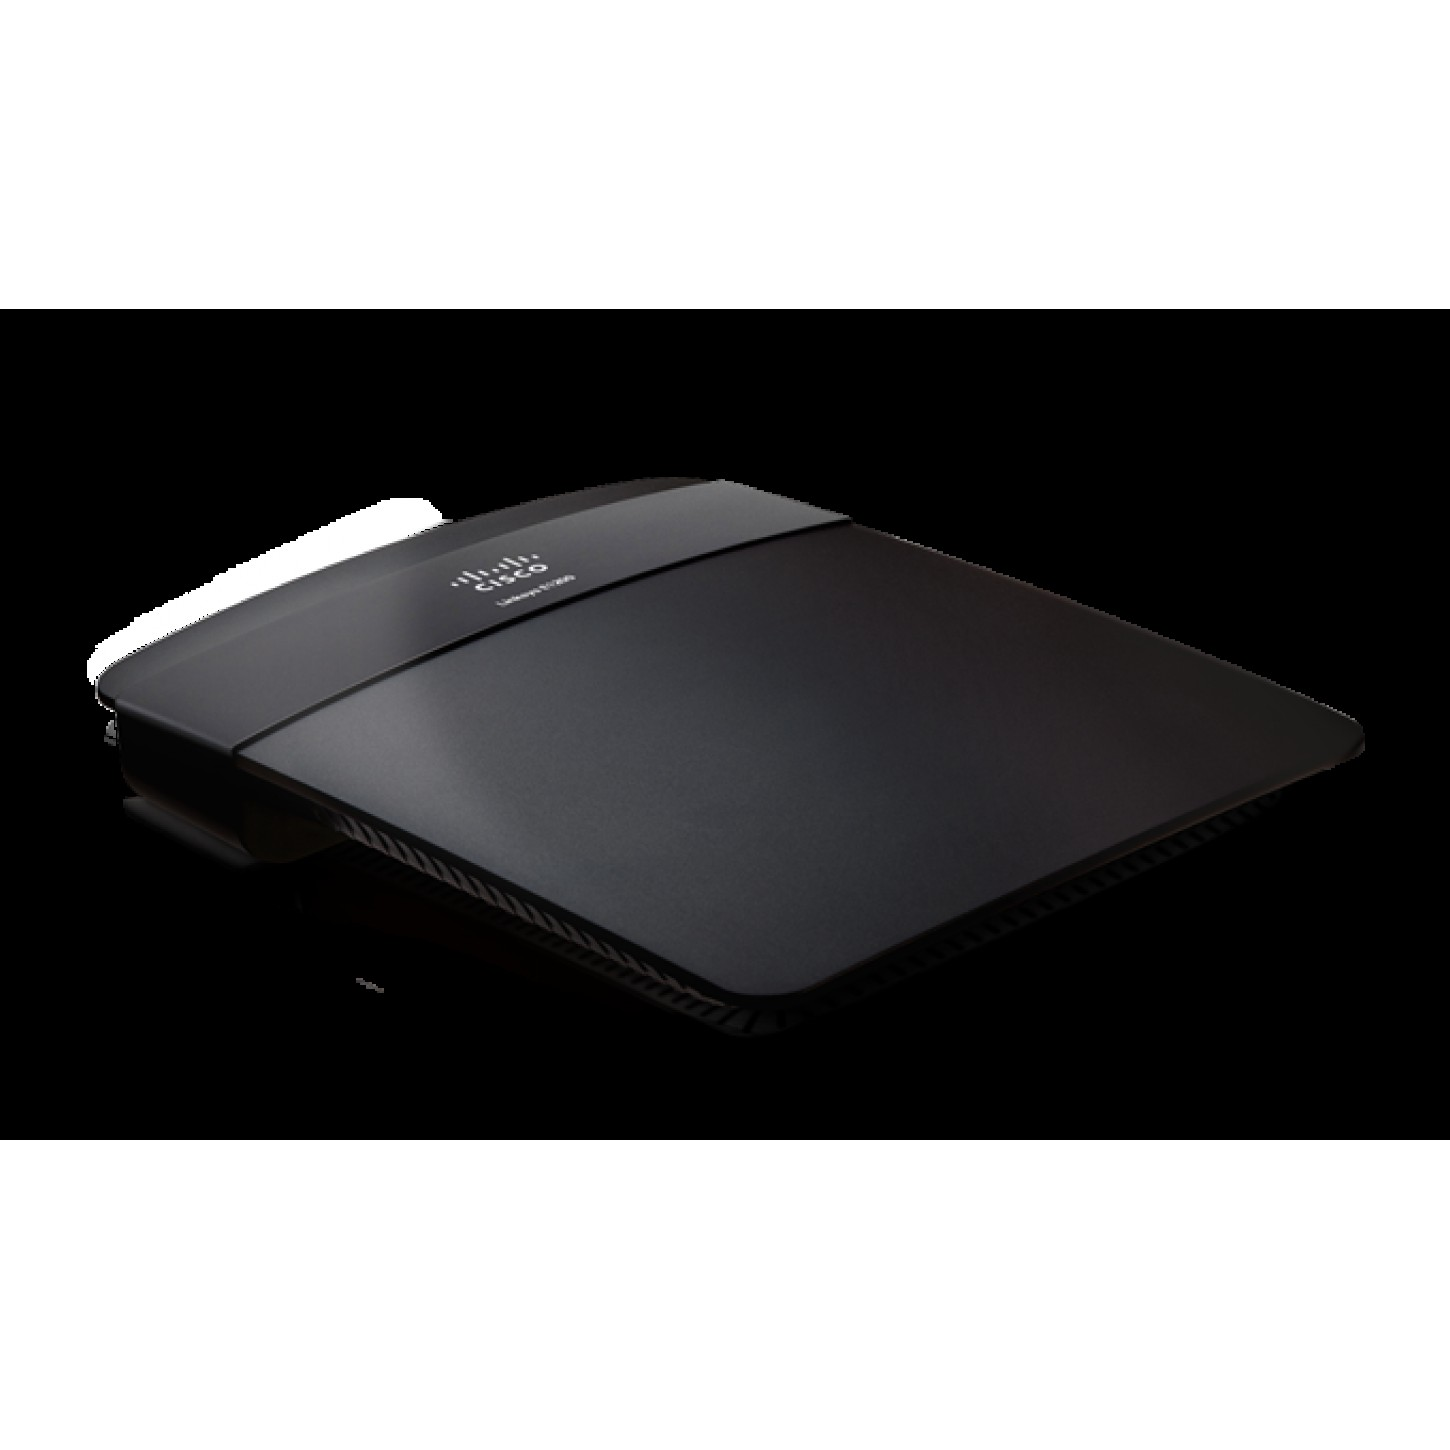 Roteador Internet Banda Larga Wireless Linksys E1200 - Taxa 300Mbps